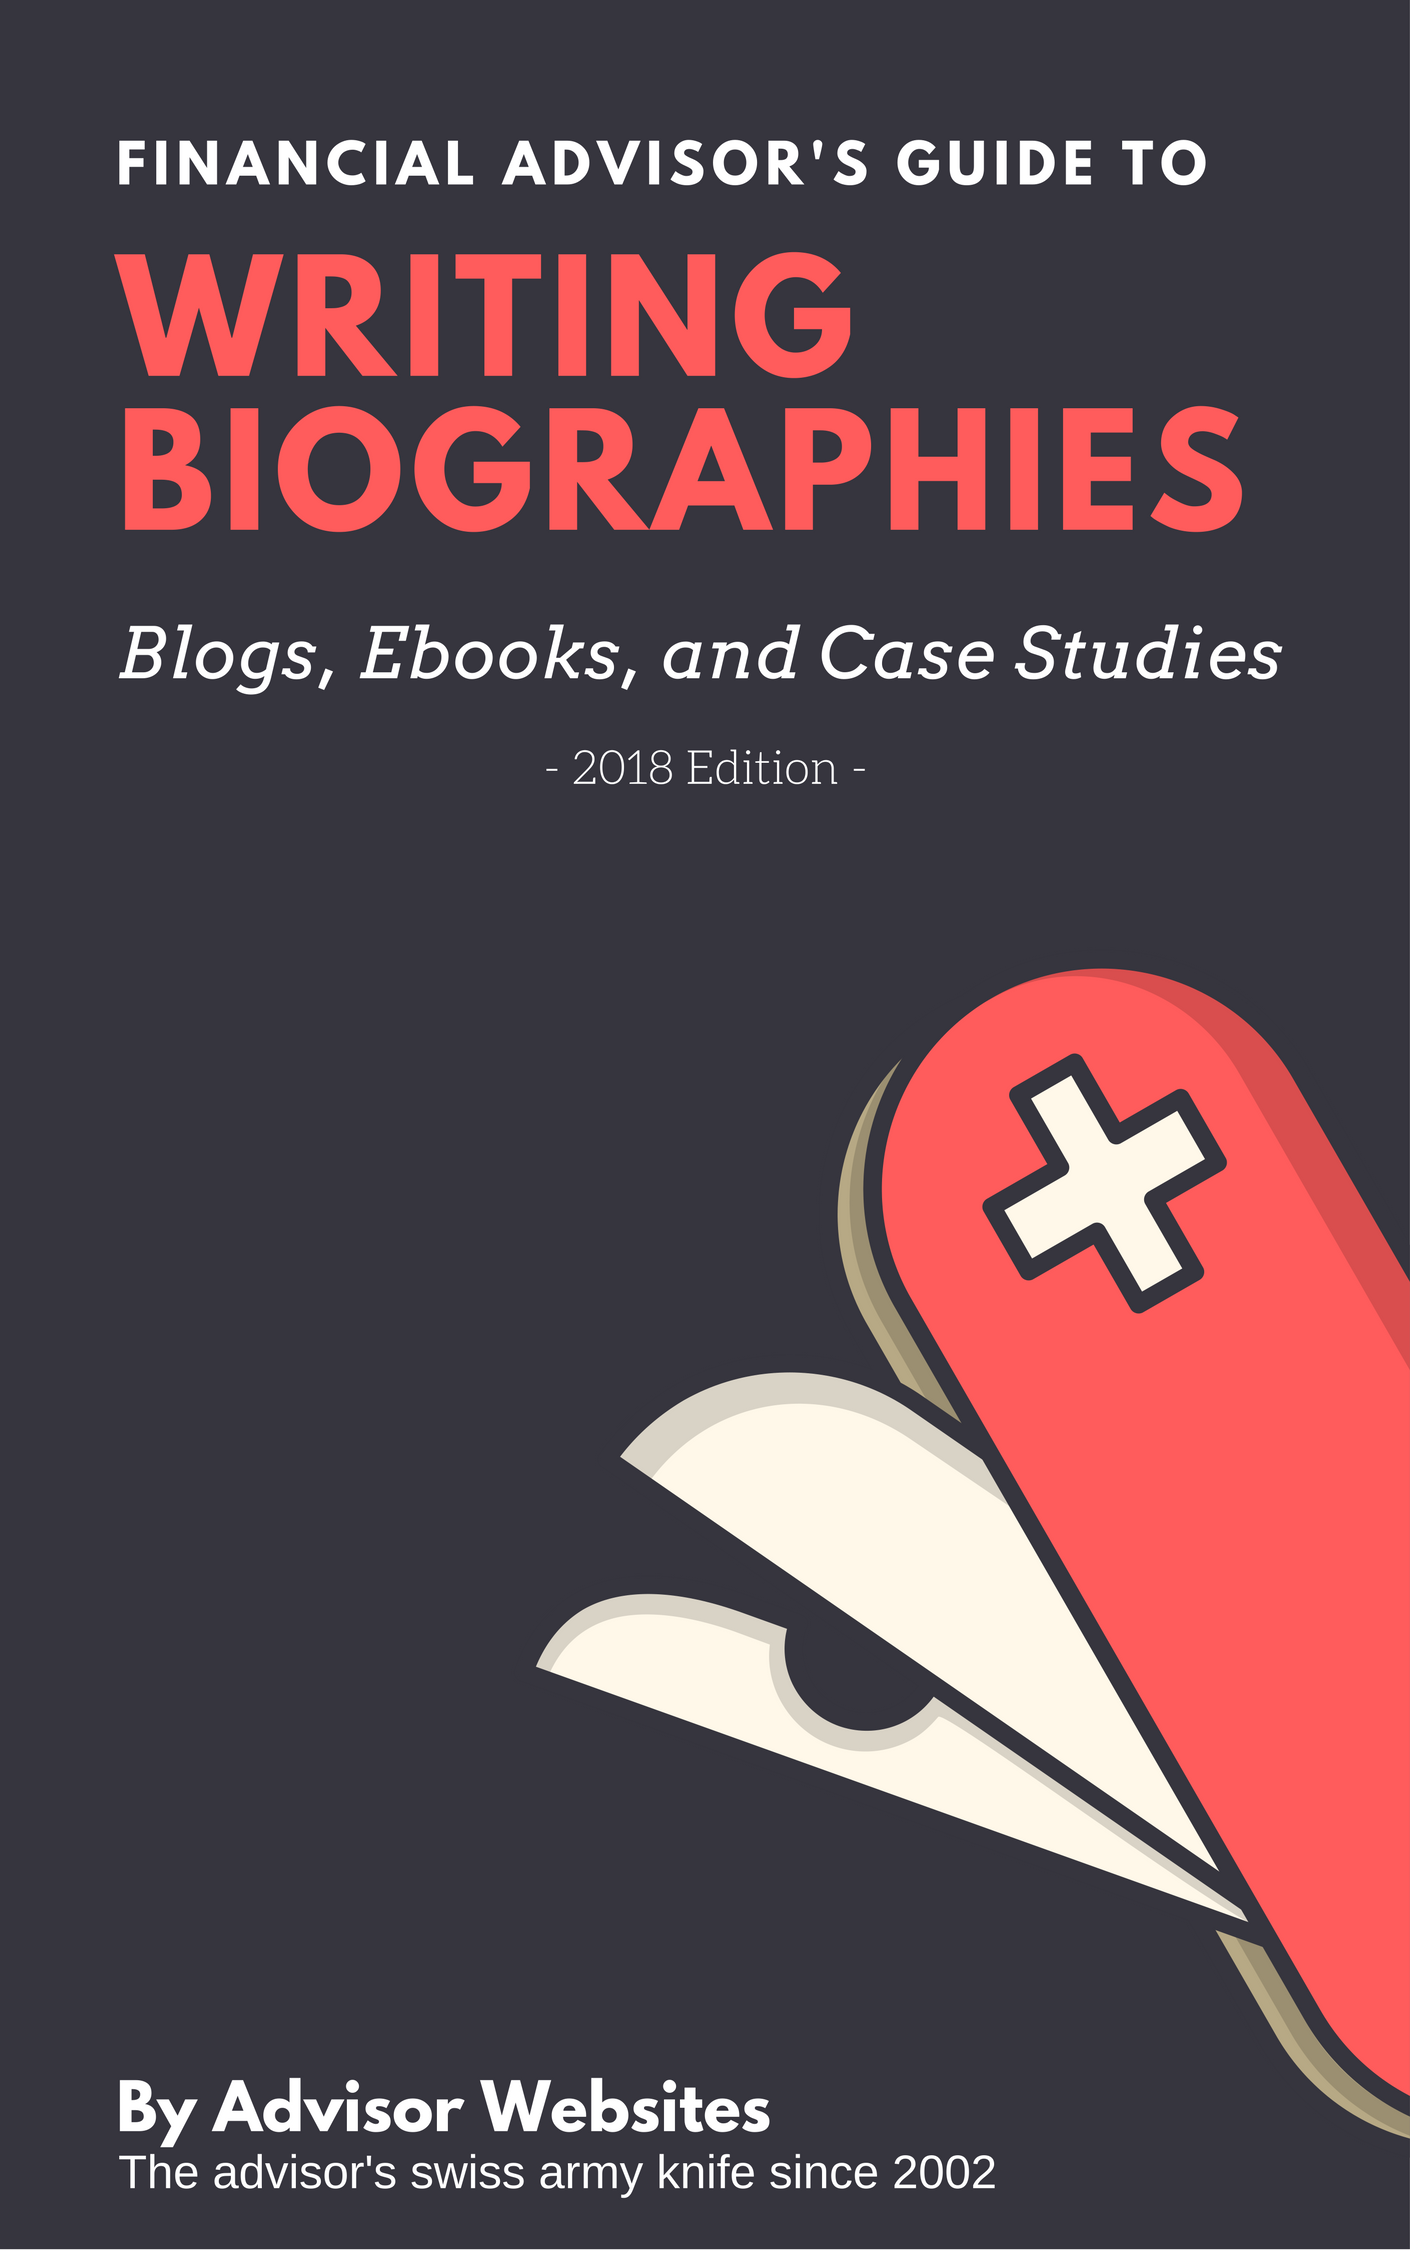 Ebook cover - The Financial Advisors' Guide to Writing Biographies, Blogs, Ebooks, and Case Studies.png